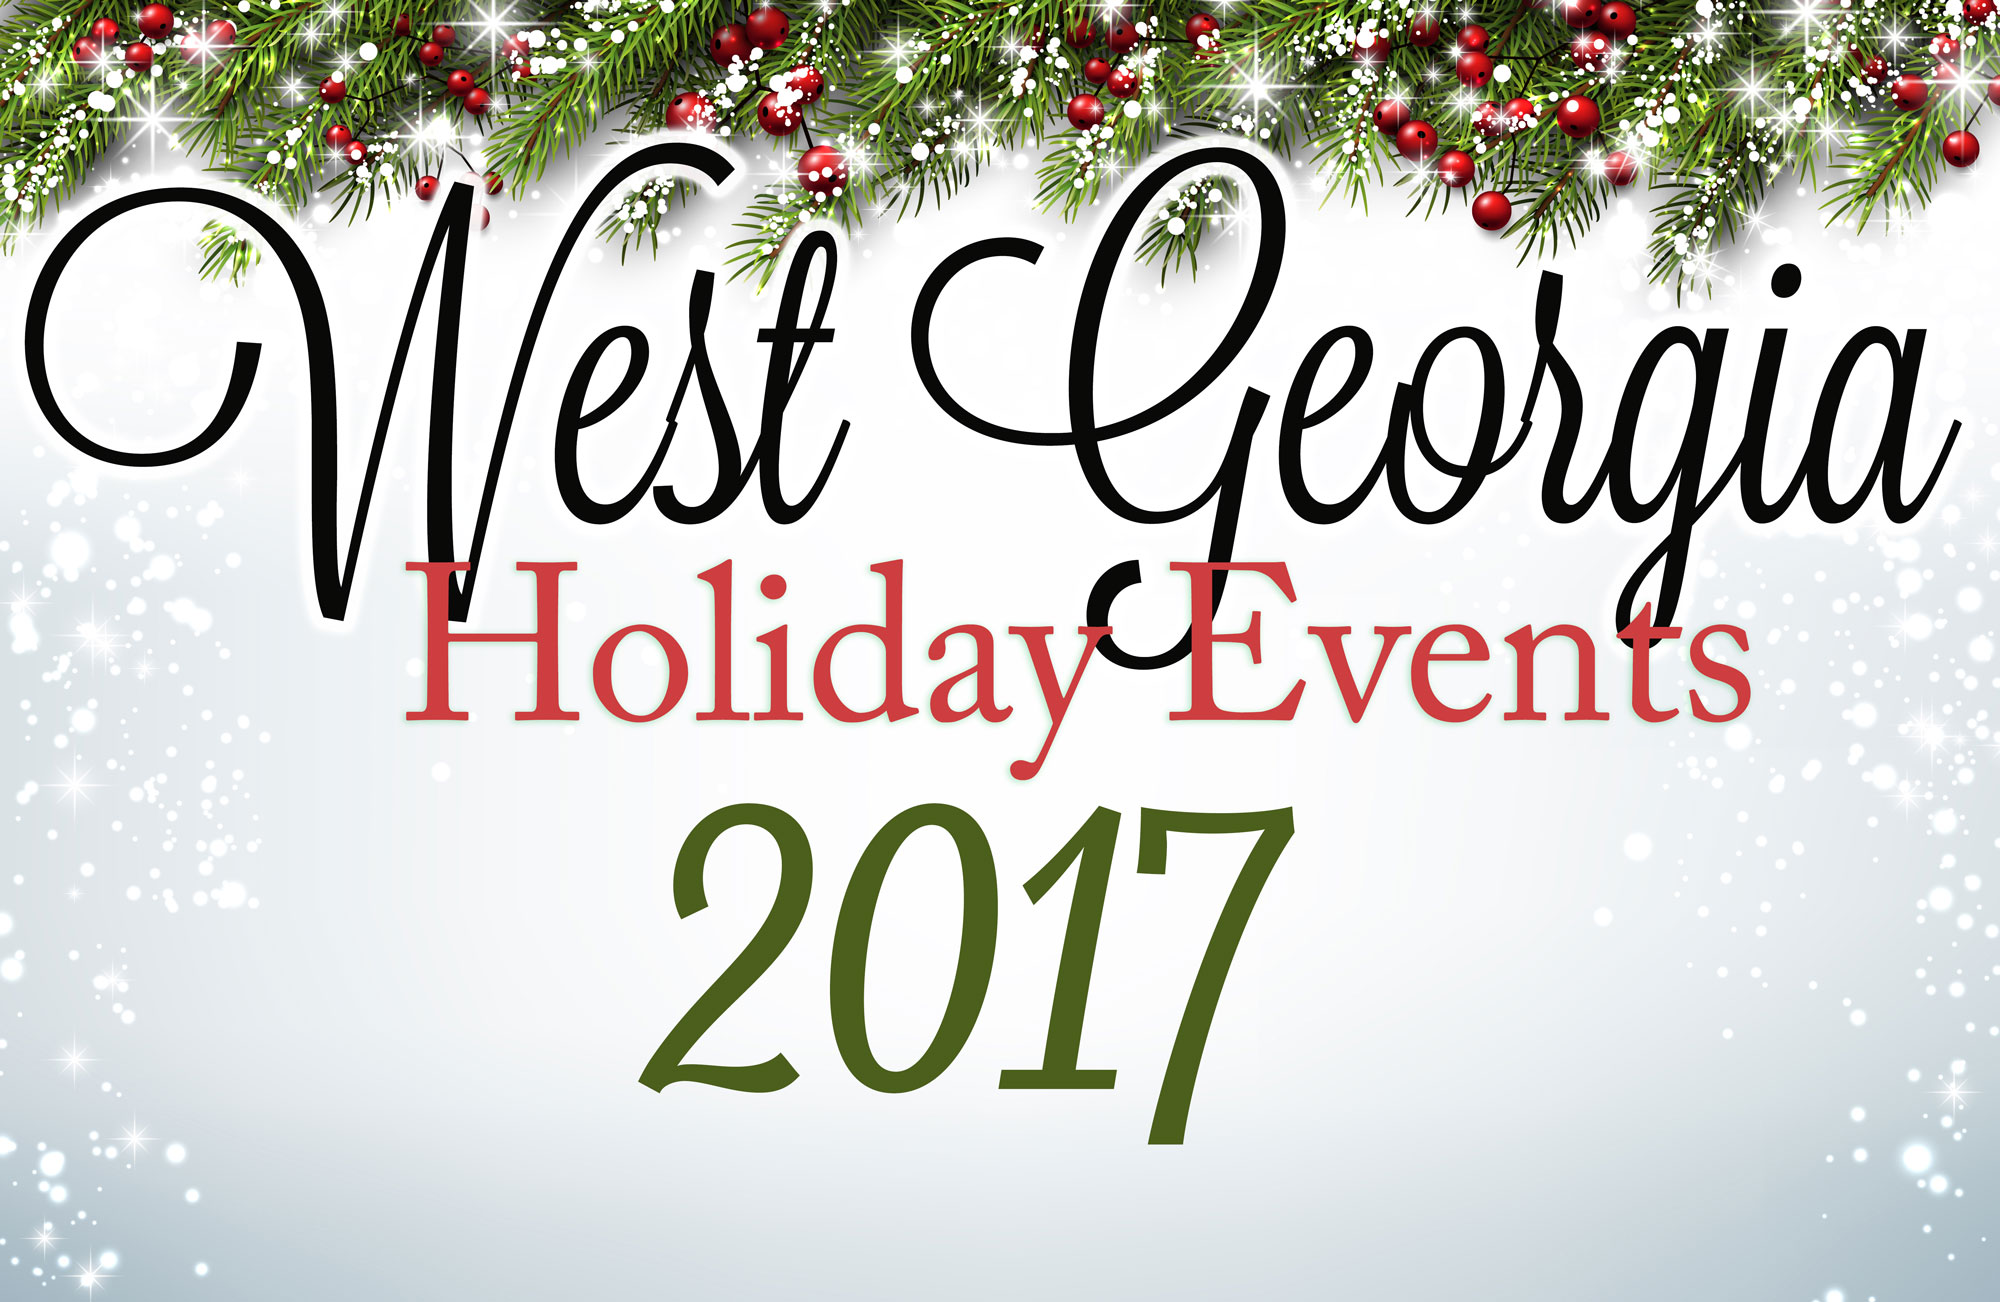 West Georgia Holiday Events 2017